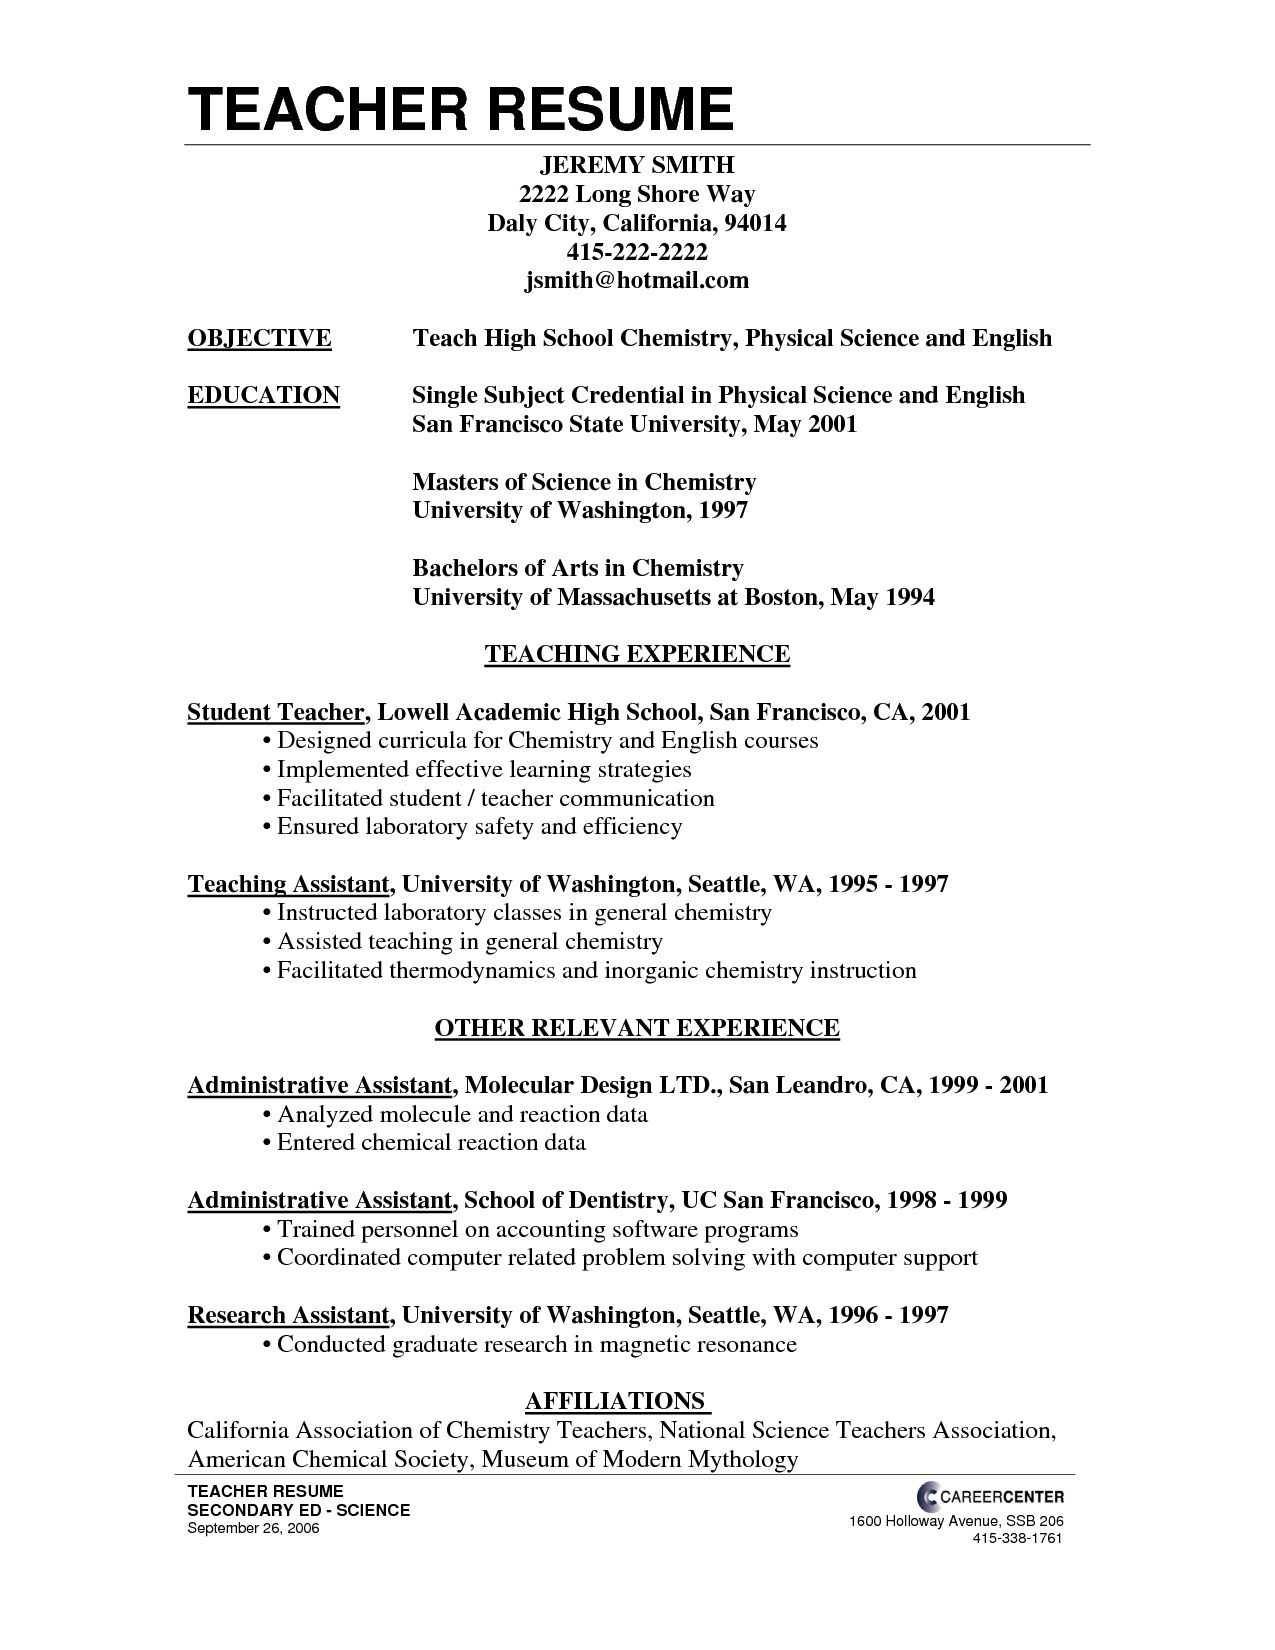 Resume Format For Primary Teachers